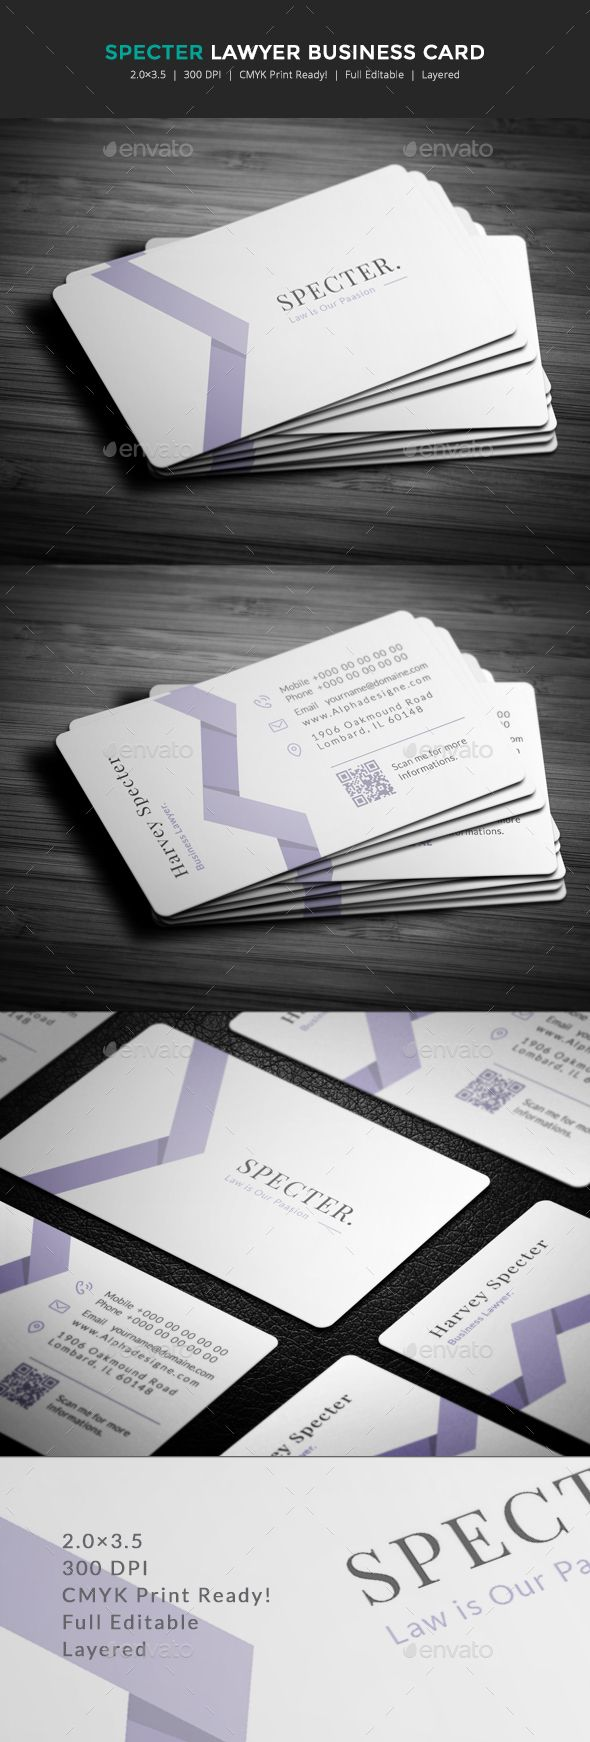 Specter lawyer business card lawyer business cards and card templates specter lawyer business card template psd colourmoves